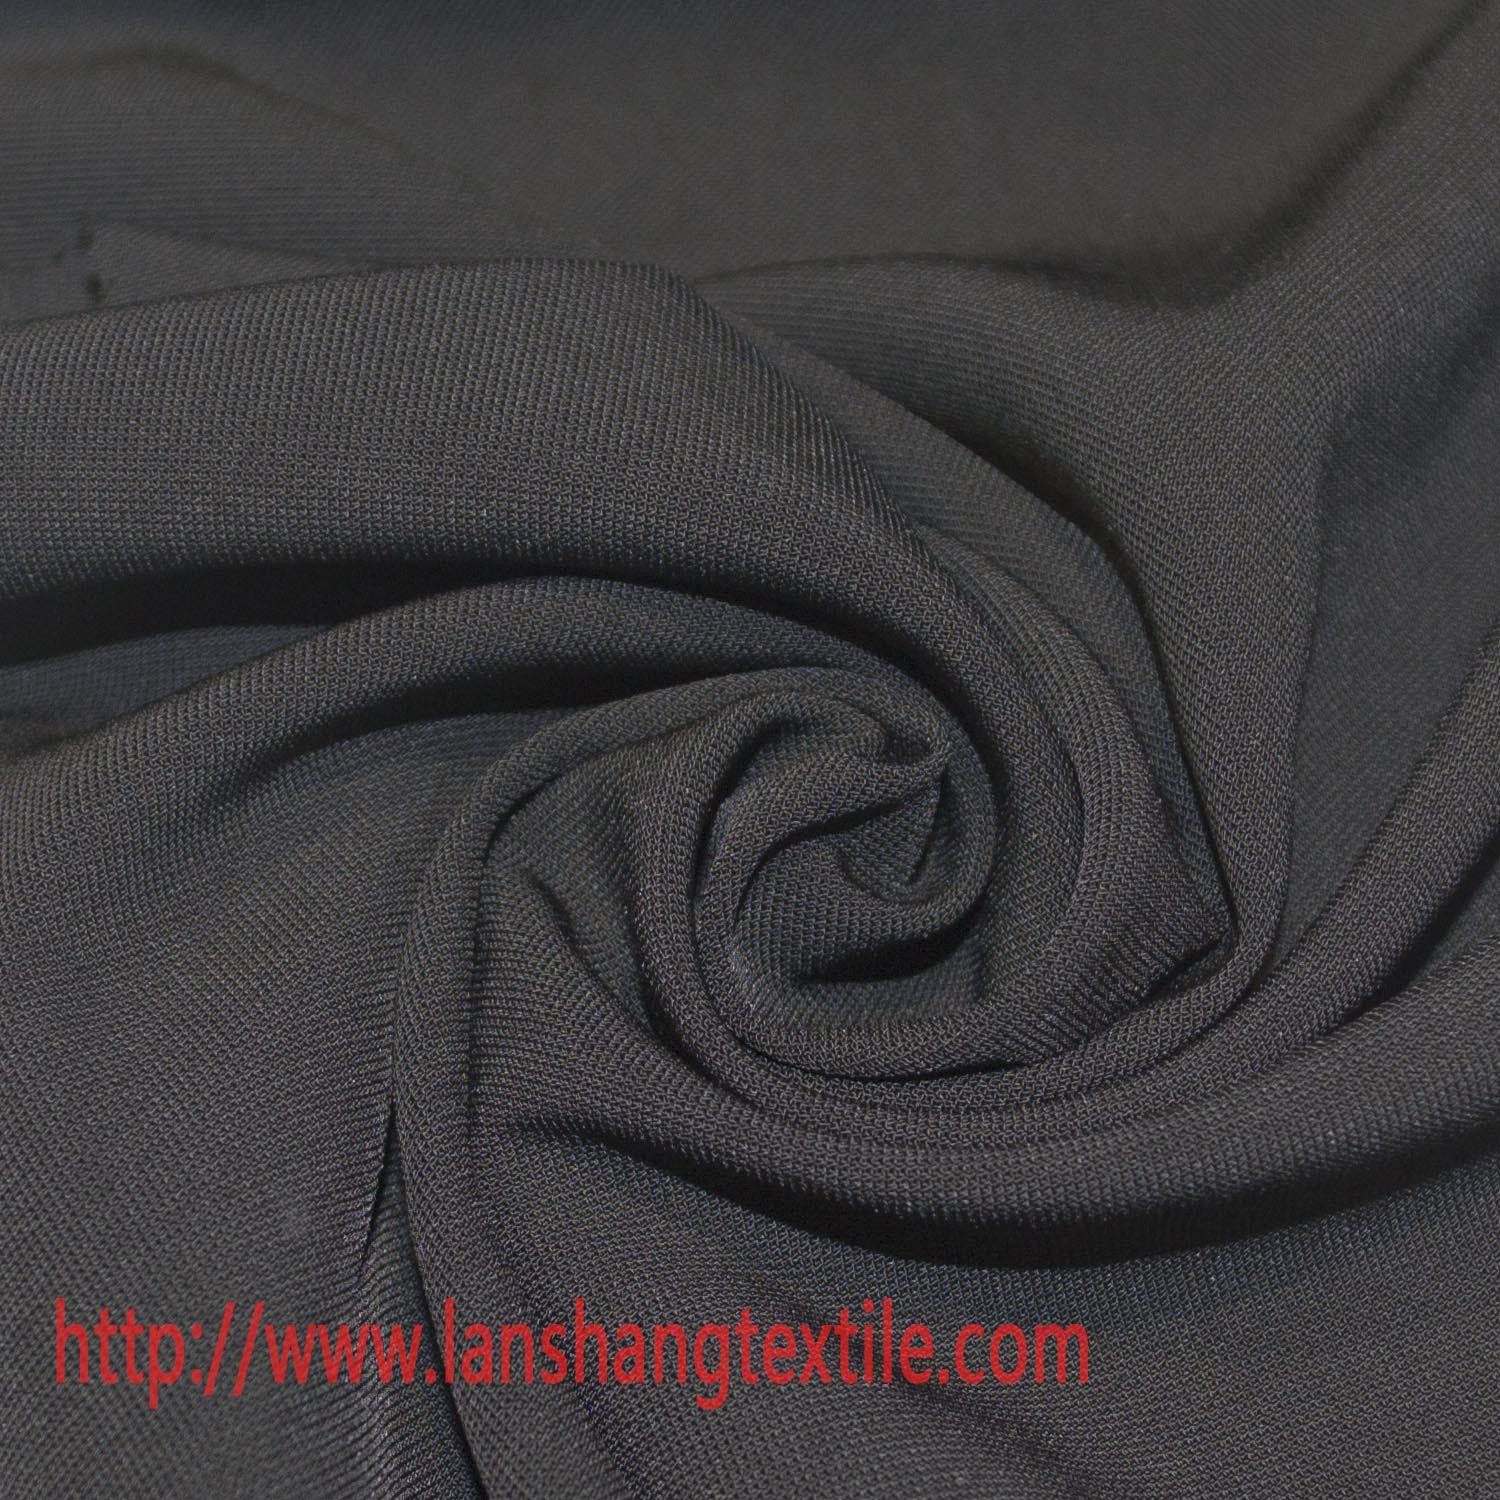 Plain Dyed Chemical Woven Fabric Polyester Fabric for Garment Shirt Skirt Home Textile pictures & photos